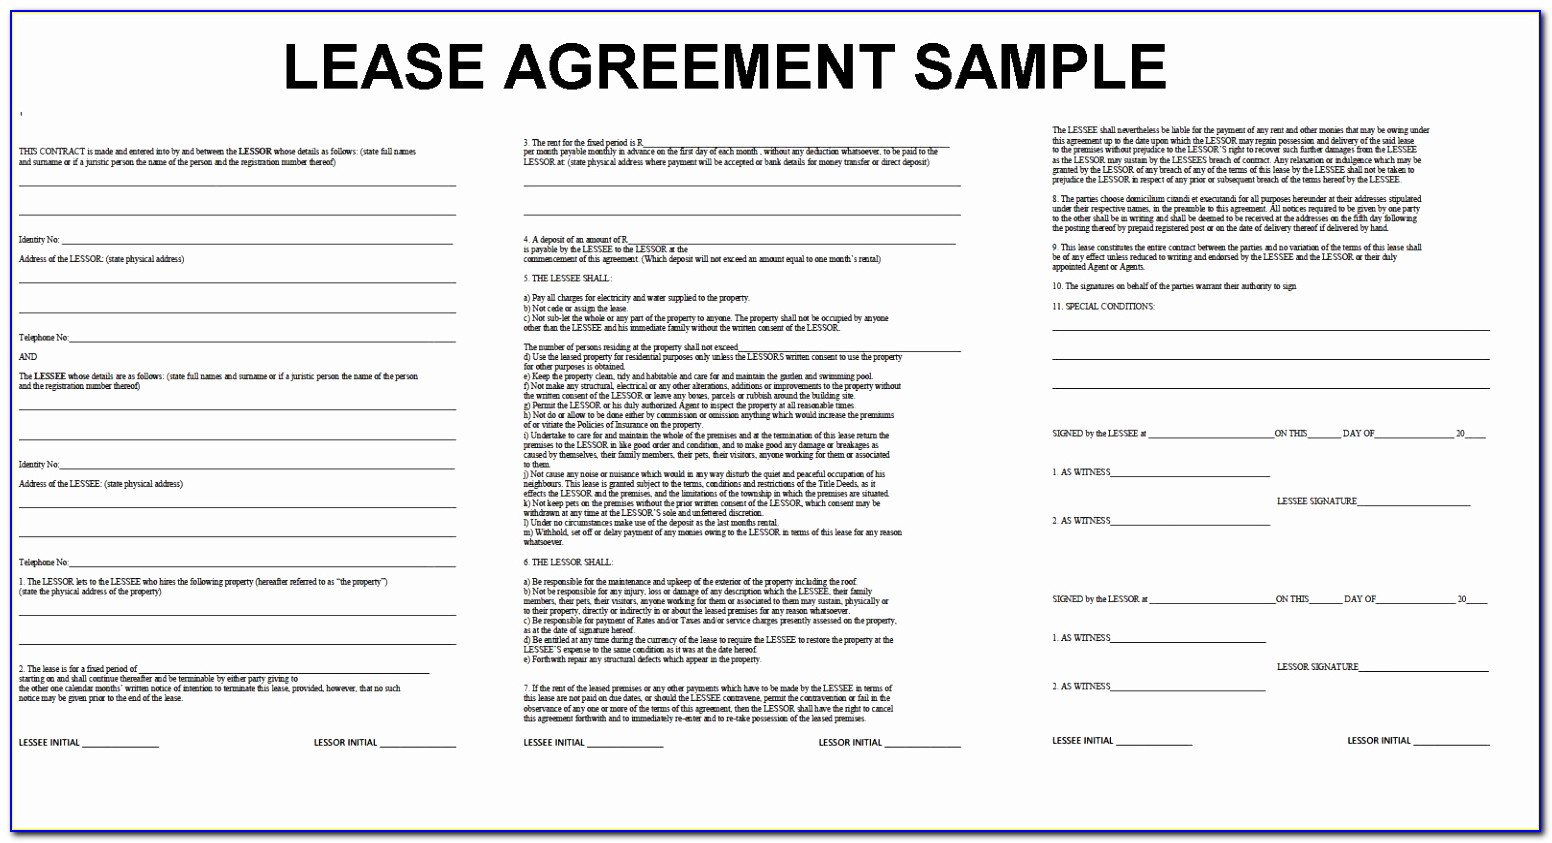 Lease Agreement Format Agipeadosencolombia Printable Residential Tenancy Agreement Template Word Inspirational Doc Xls Letter Templates Raioe